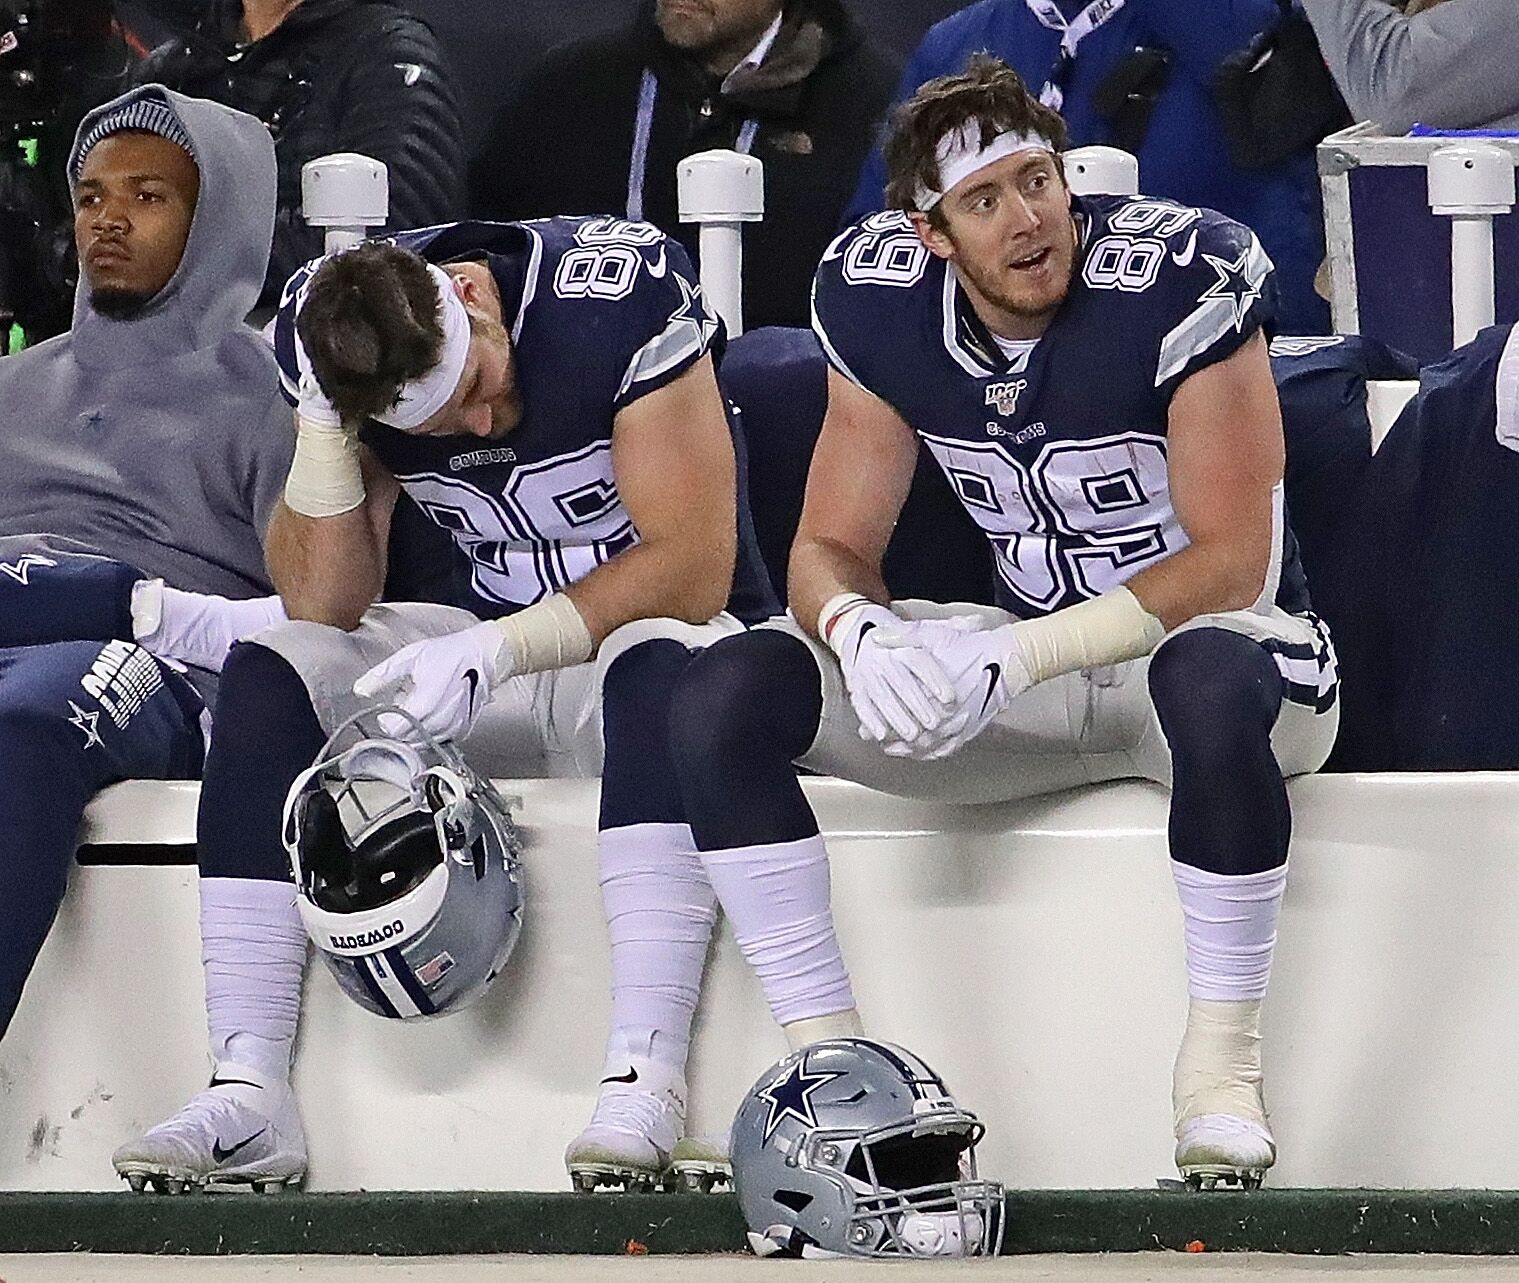 The Cowboys should forfeit their playoff spot